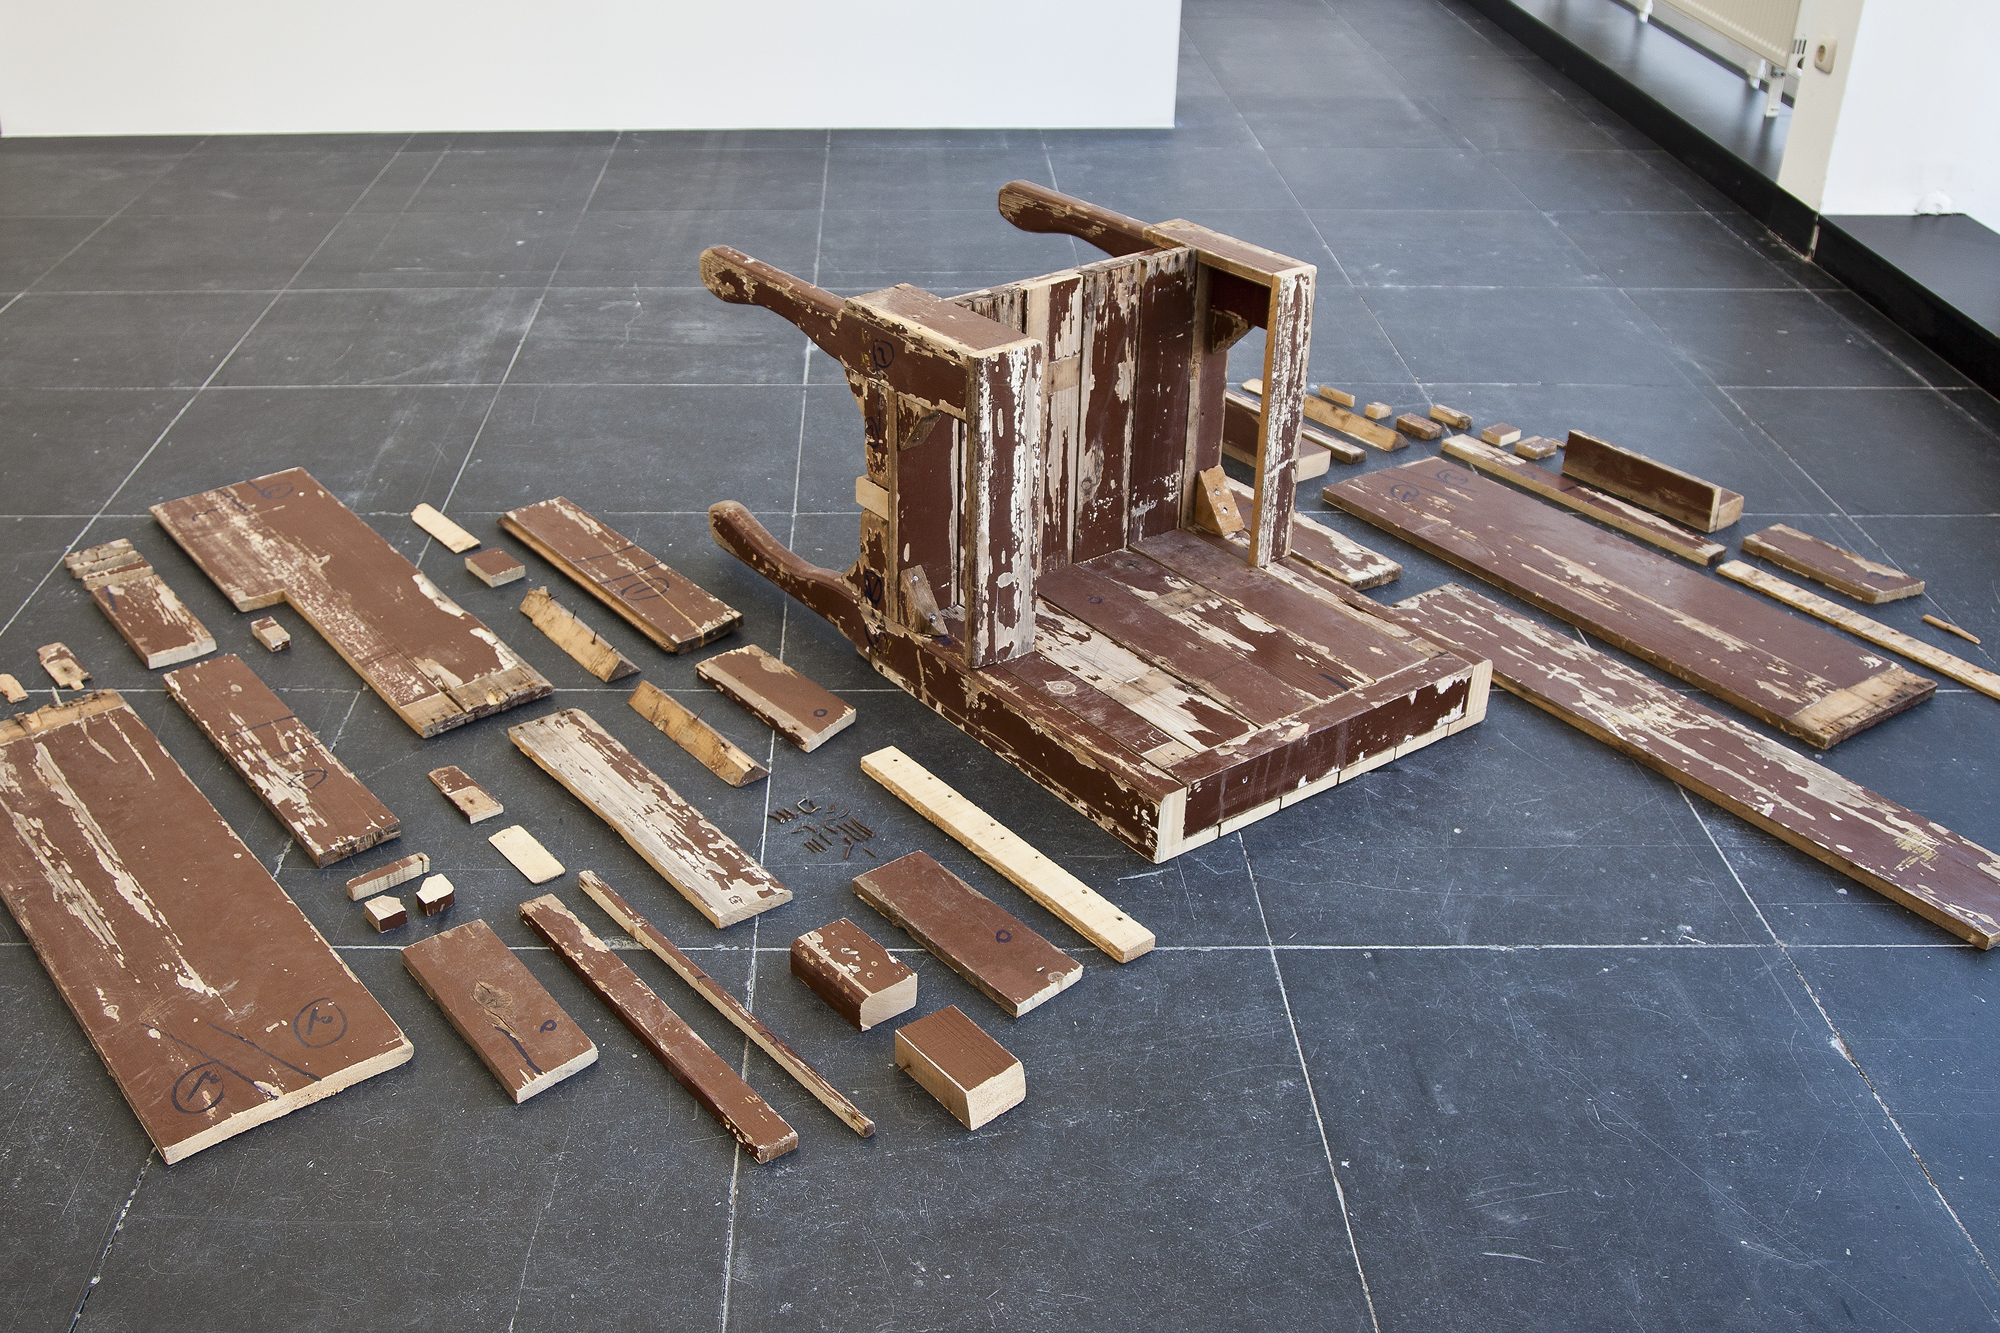 Khaled Barakeh  Regarding the Pain of Others  (2013) Wood, dimensions variable Courtesy the artist